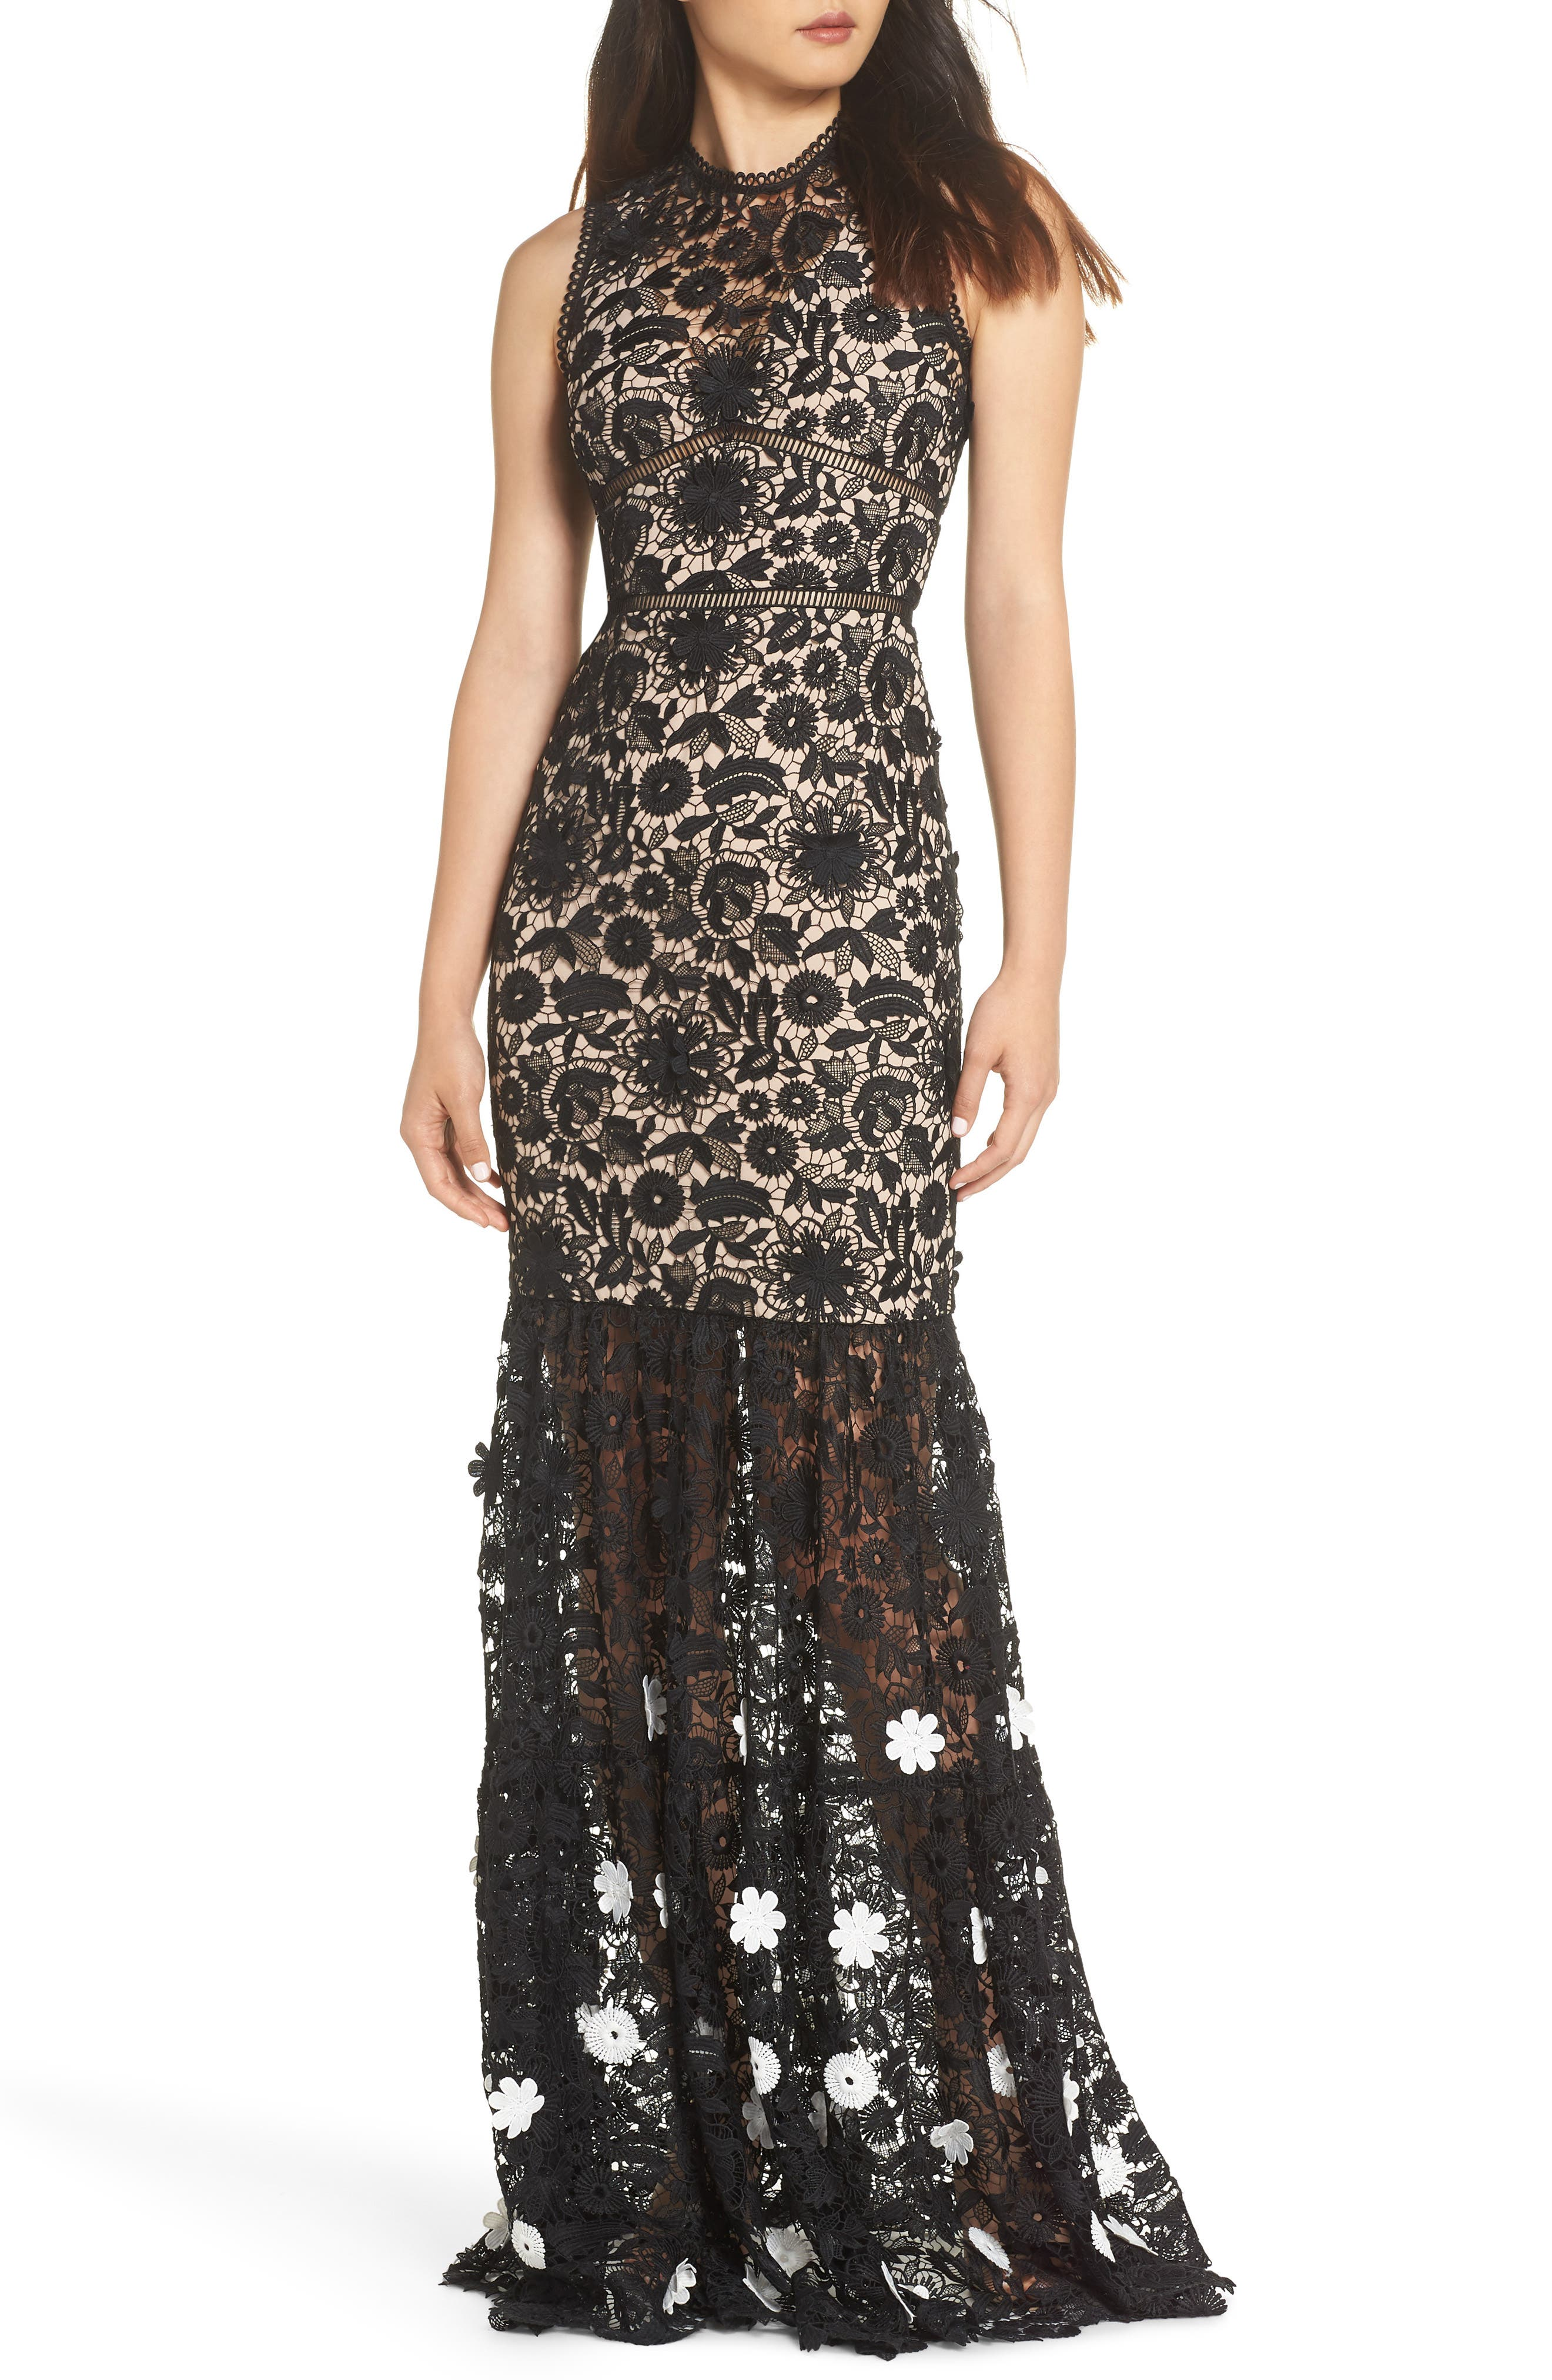 3D Black & White Floral Lace Gown,                             Main thumbnail 1, color,                             JET IVORY COMBO